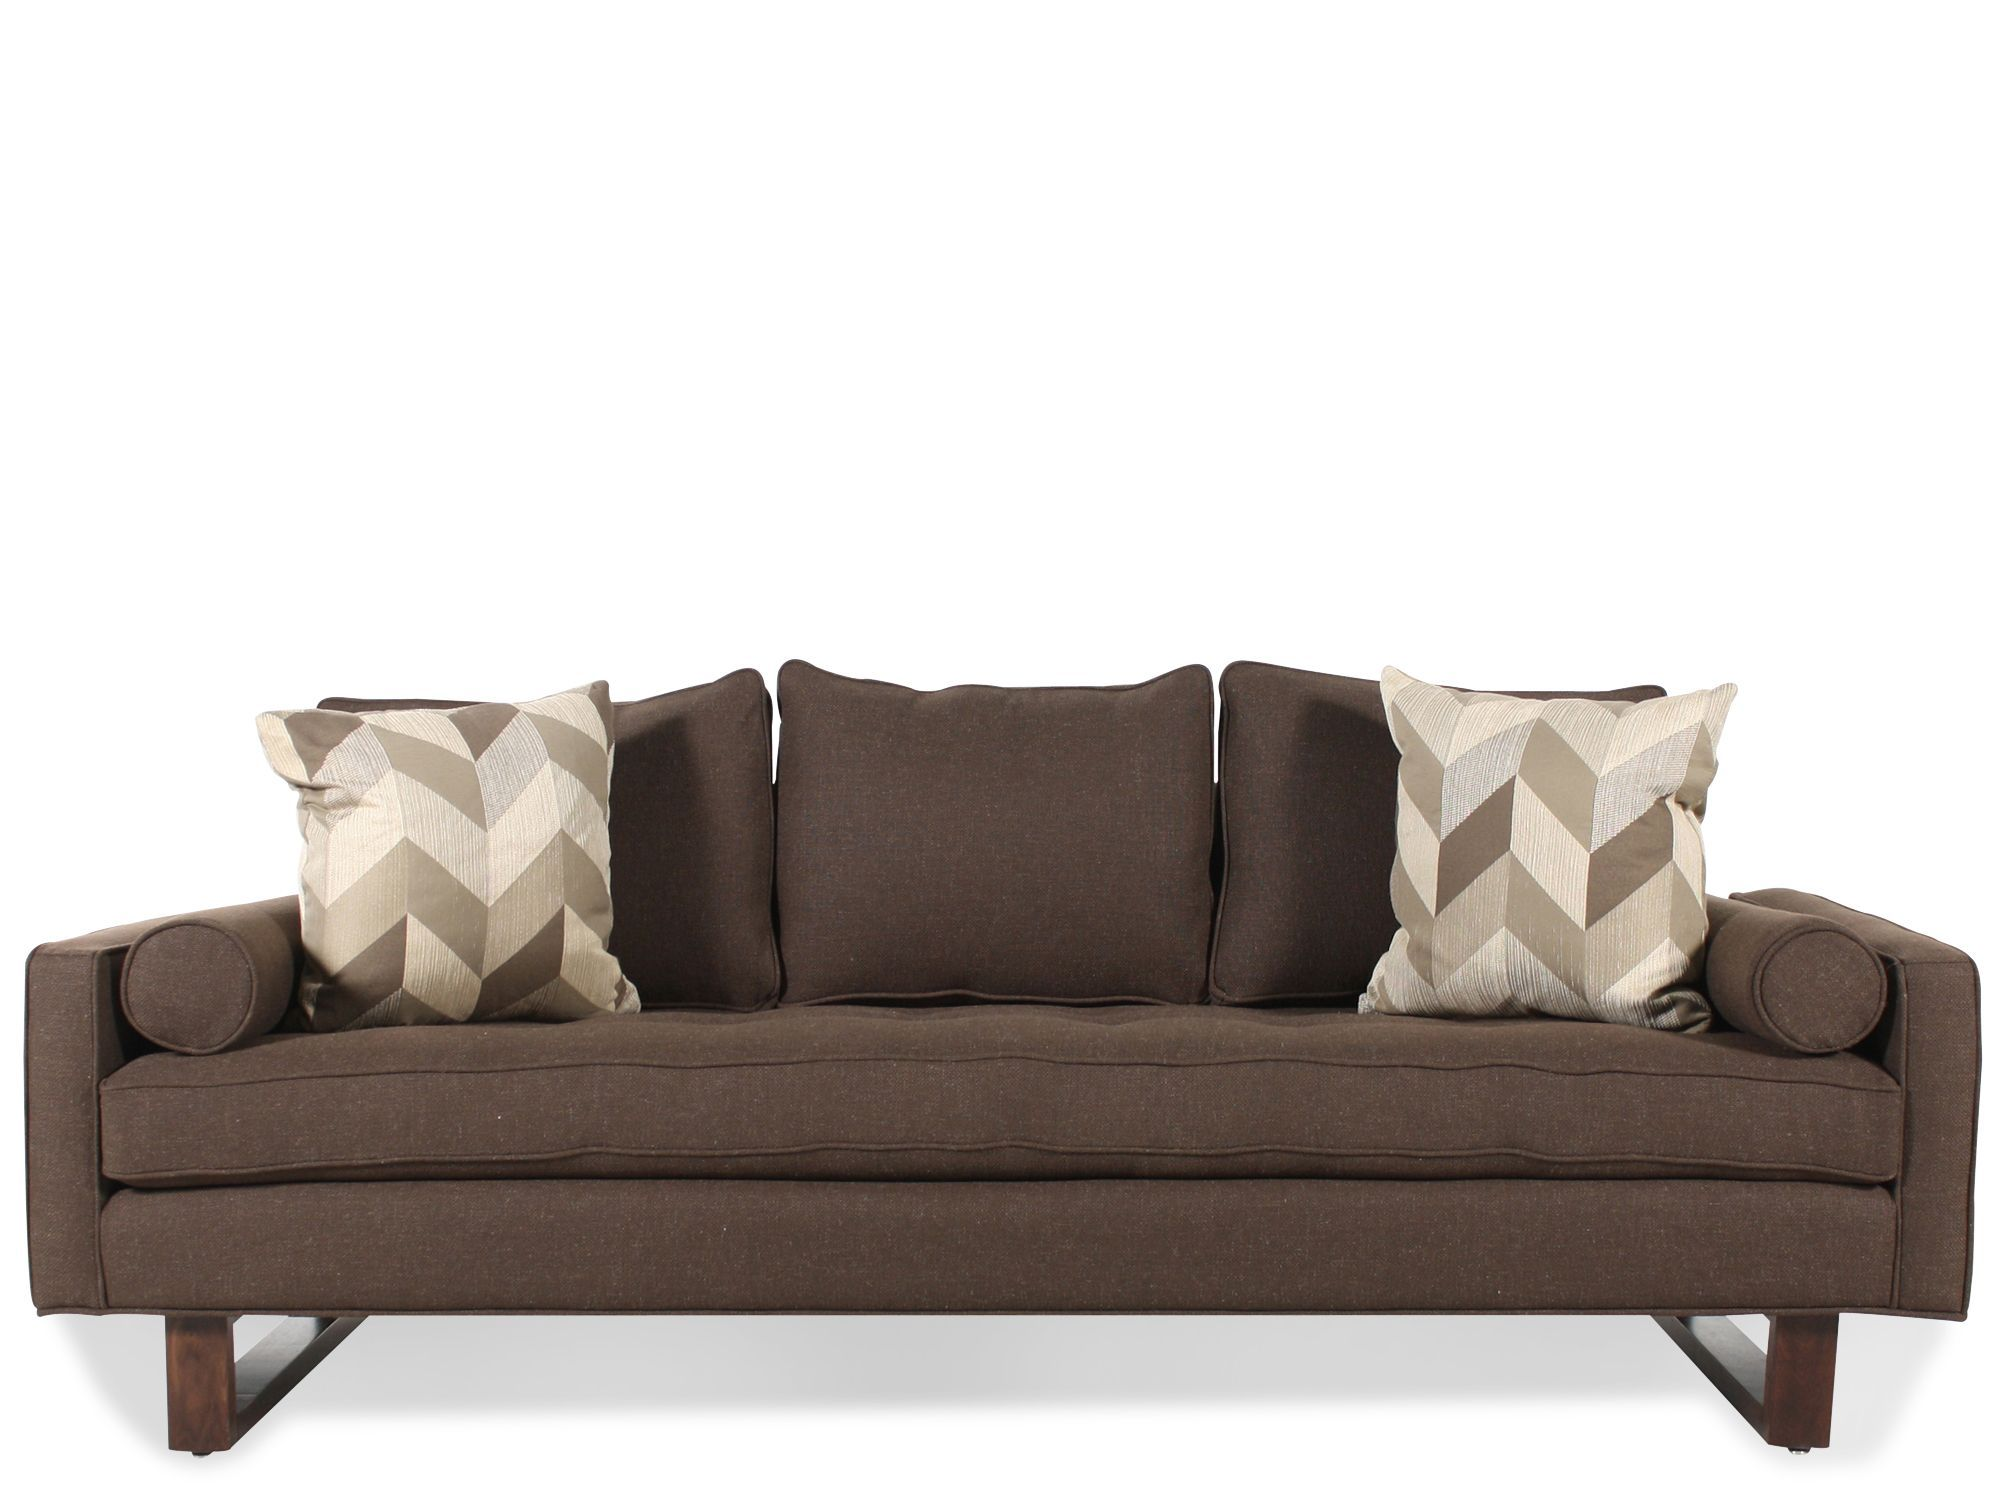 Jonathan Louis Bennett Sofa To Match My New Chair In Gray